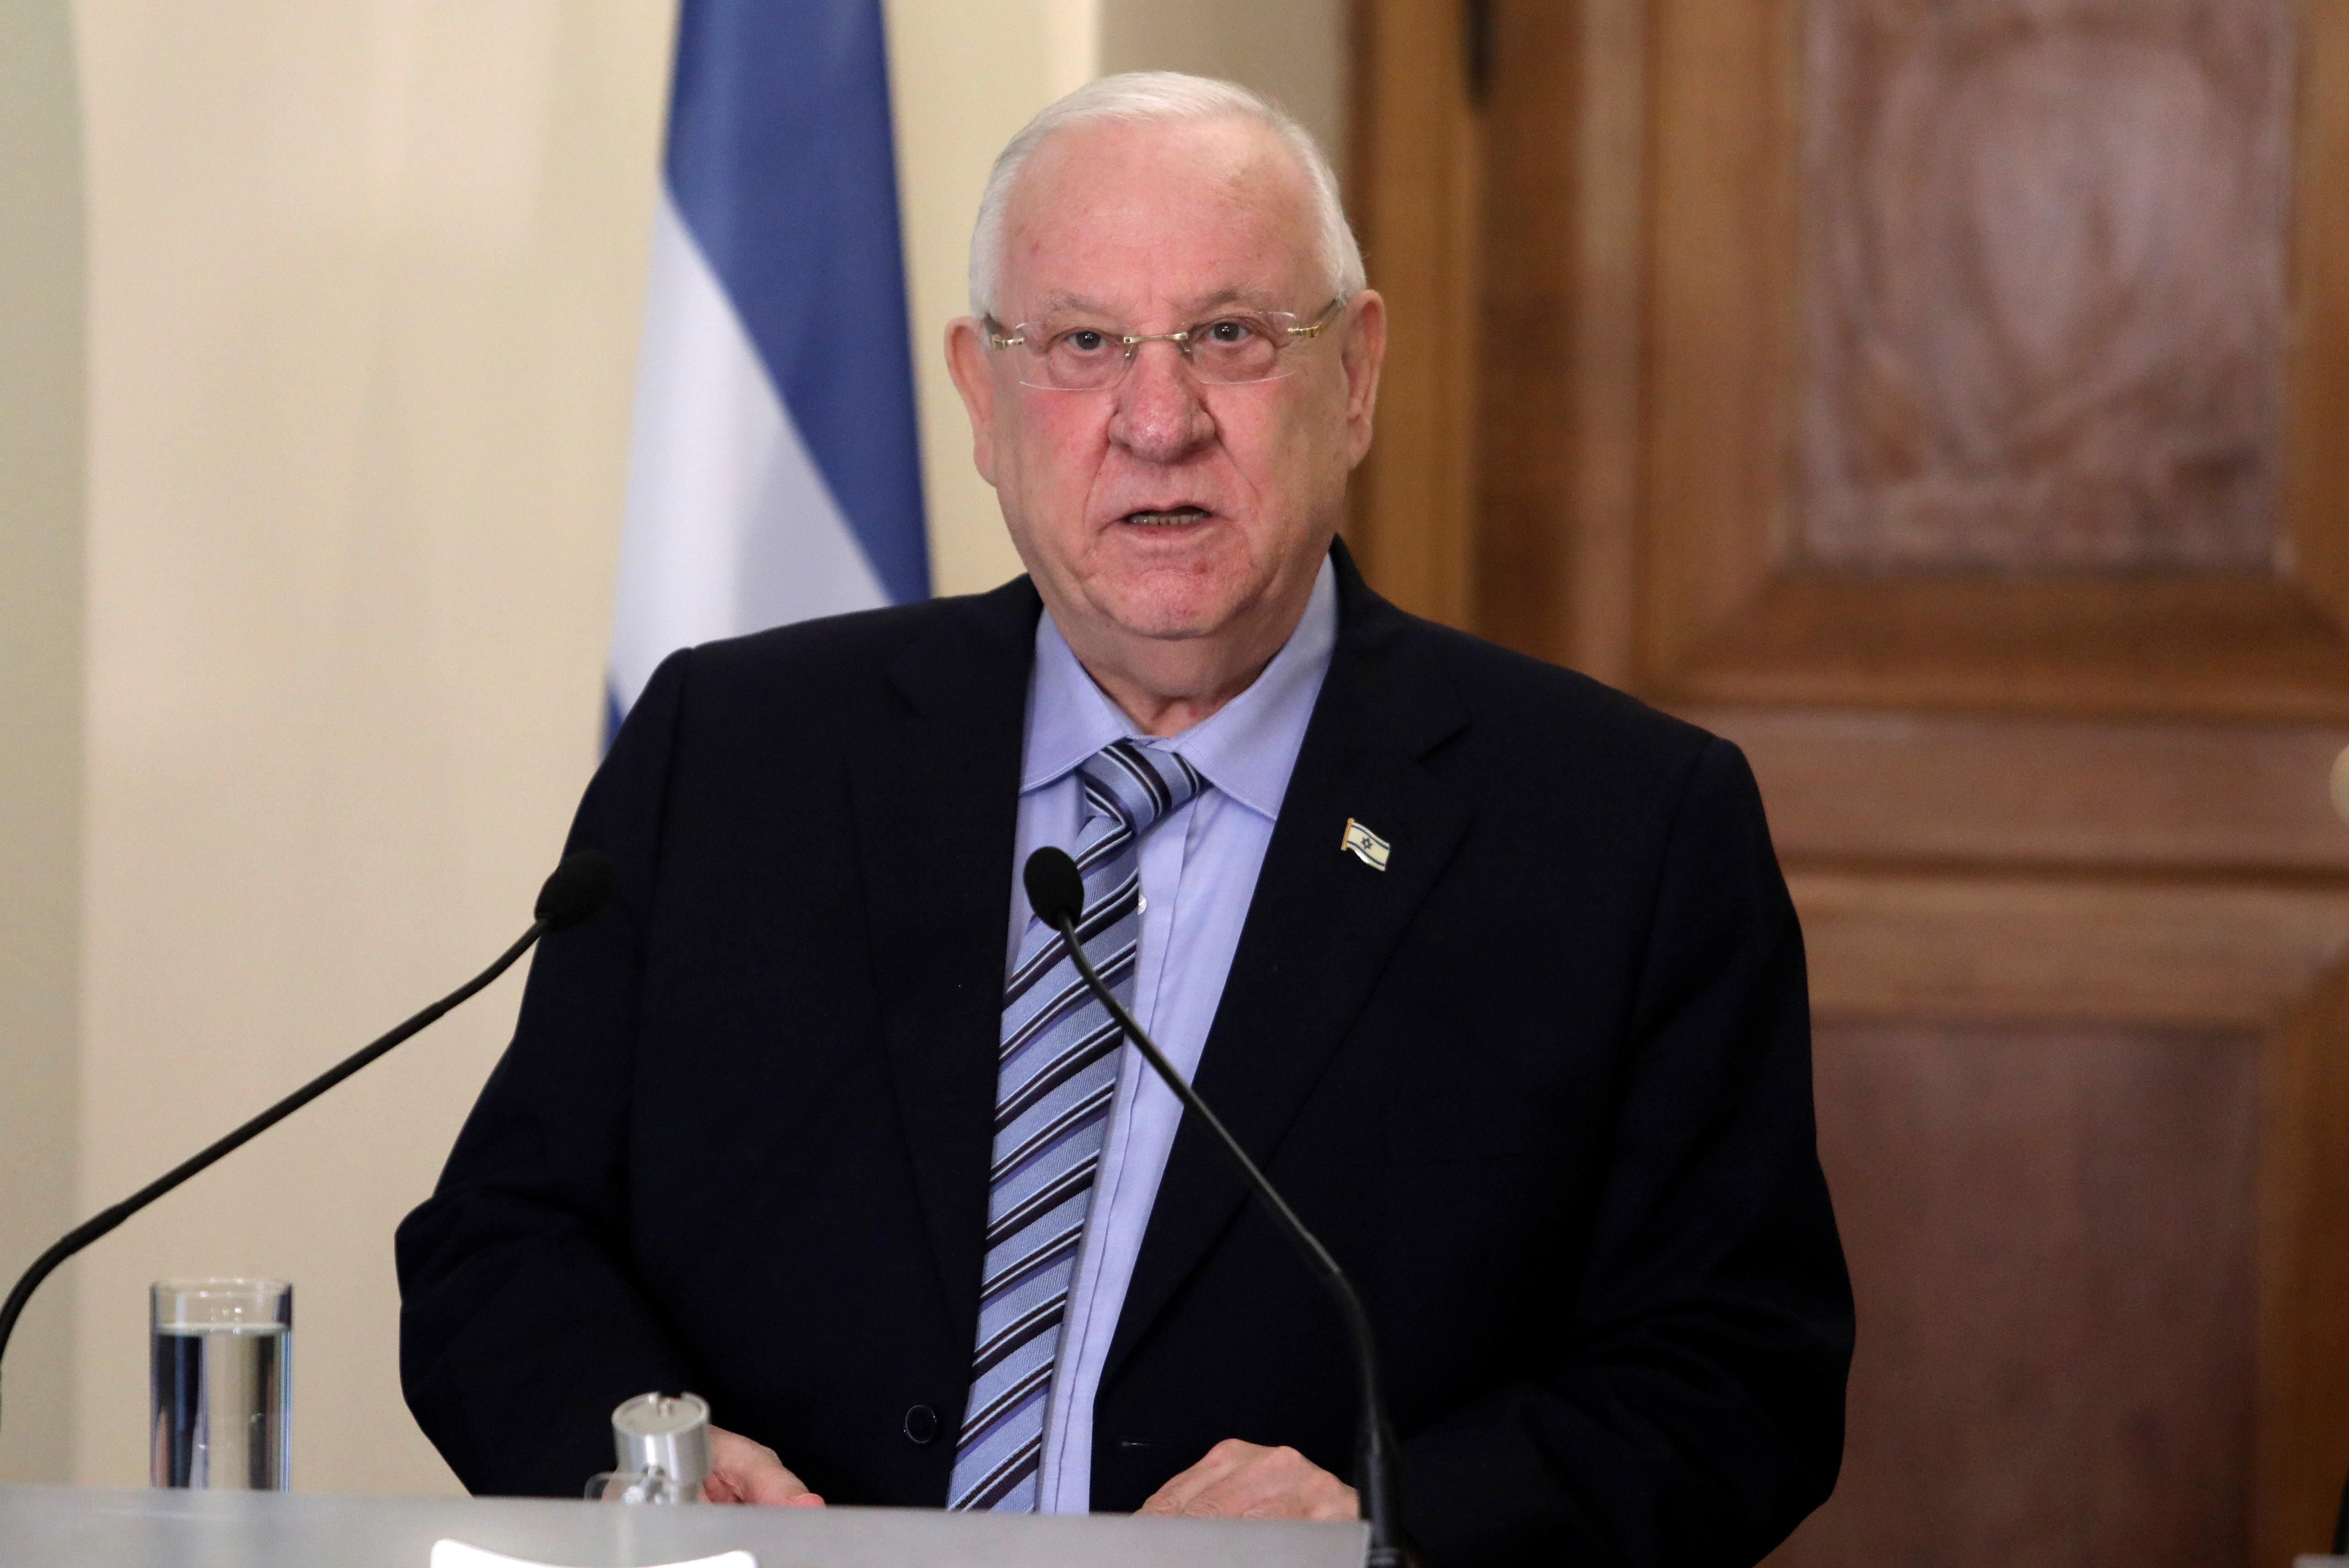 As another election looms, Israel's president asks public not to...